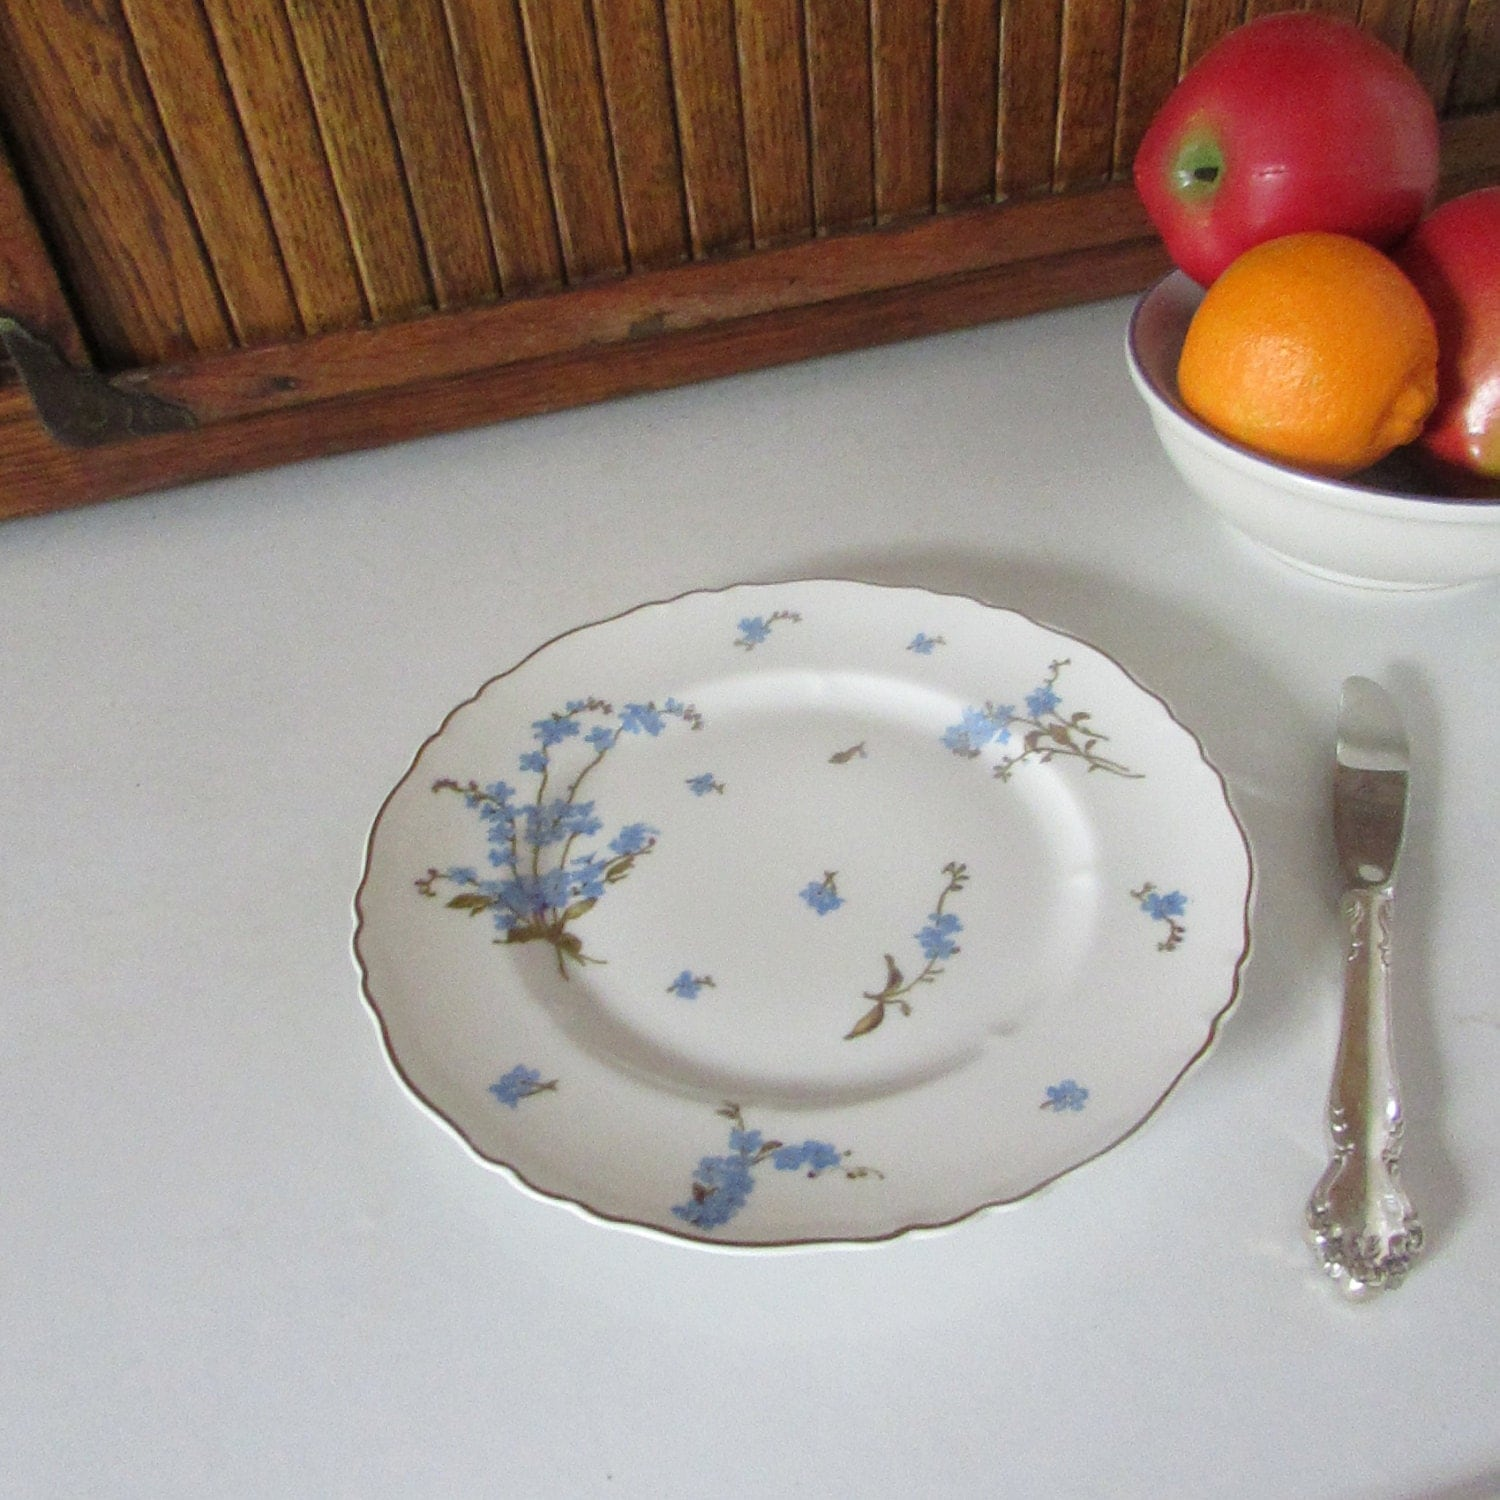 Haviland Montmery Luncheon Plate - Blue Forget-Me-Not Flowers on White Porcelain - & Haviland Montmery Luncheon Plate - Blue Forget-Me-Not Flowers on ...